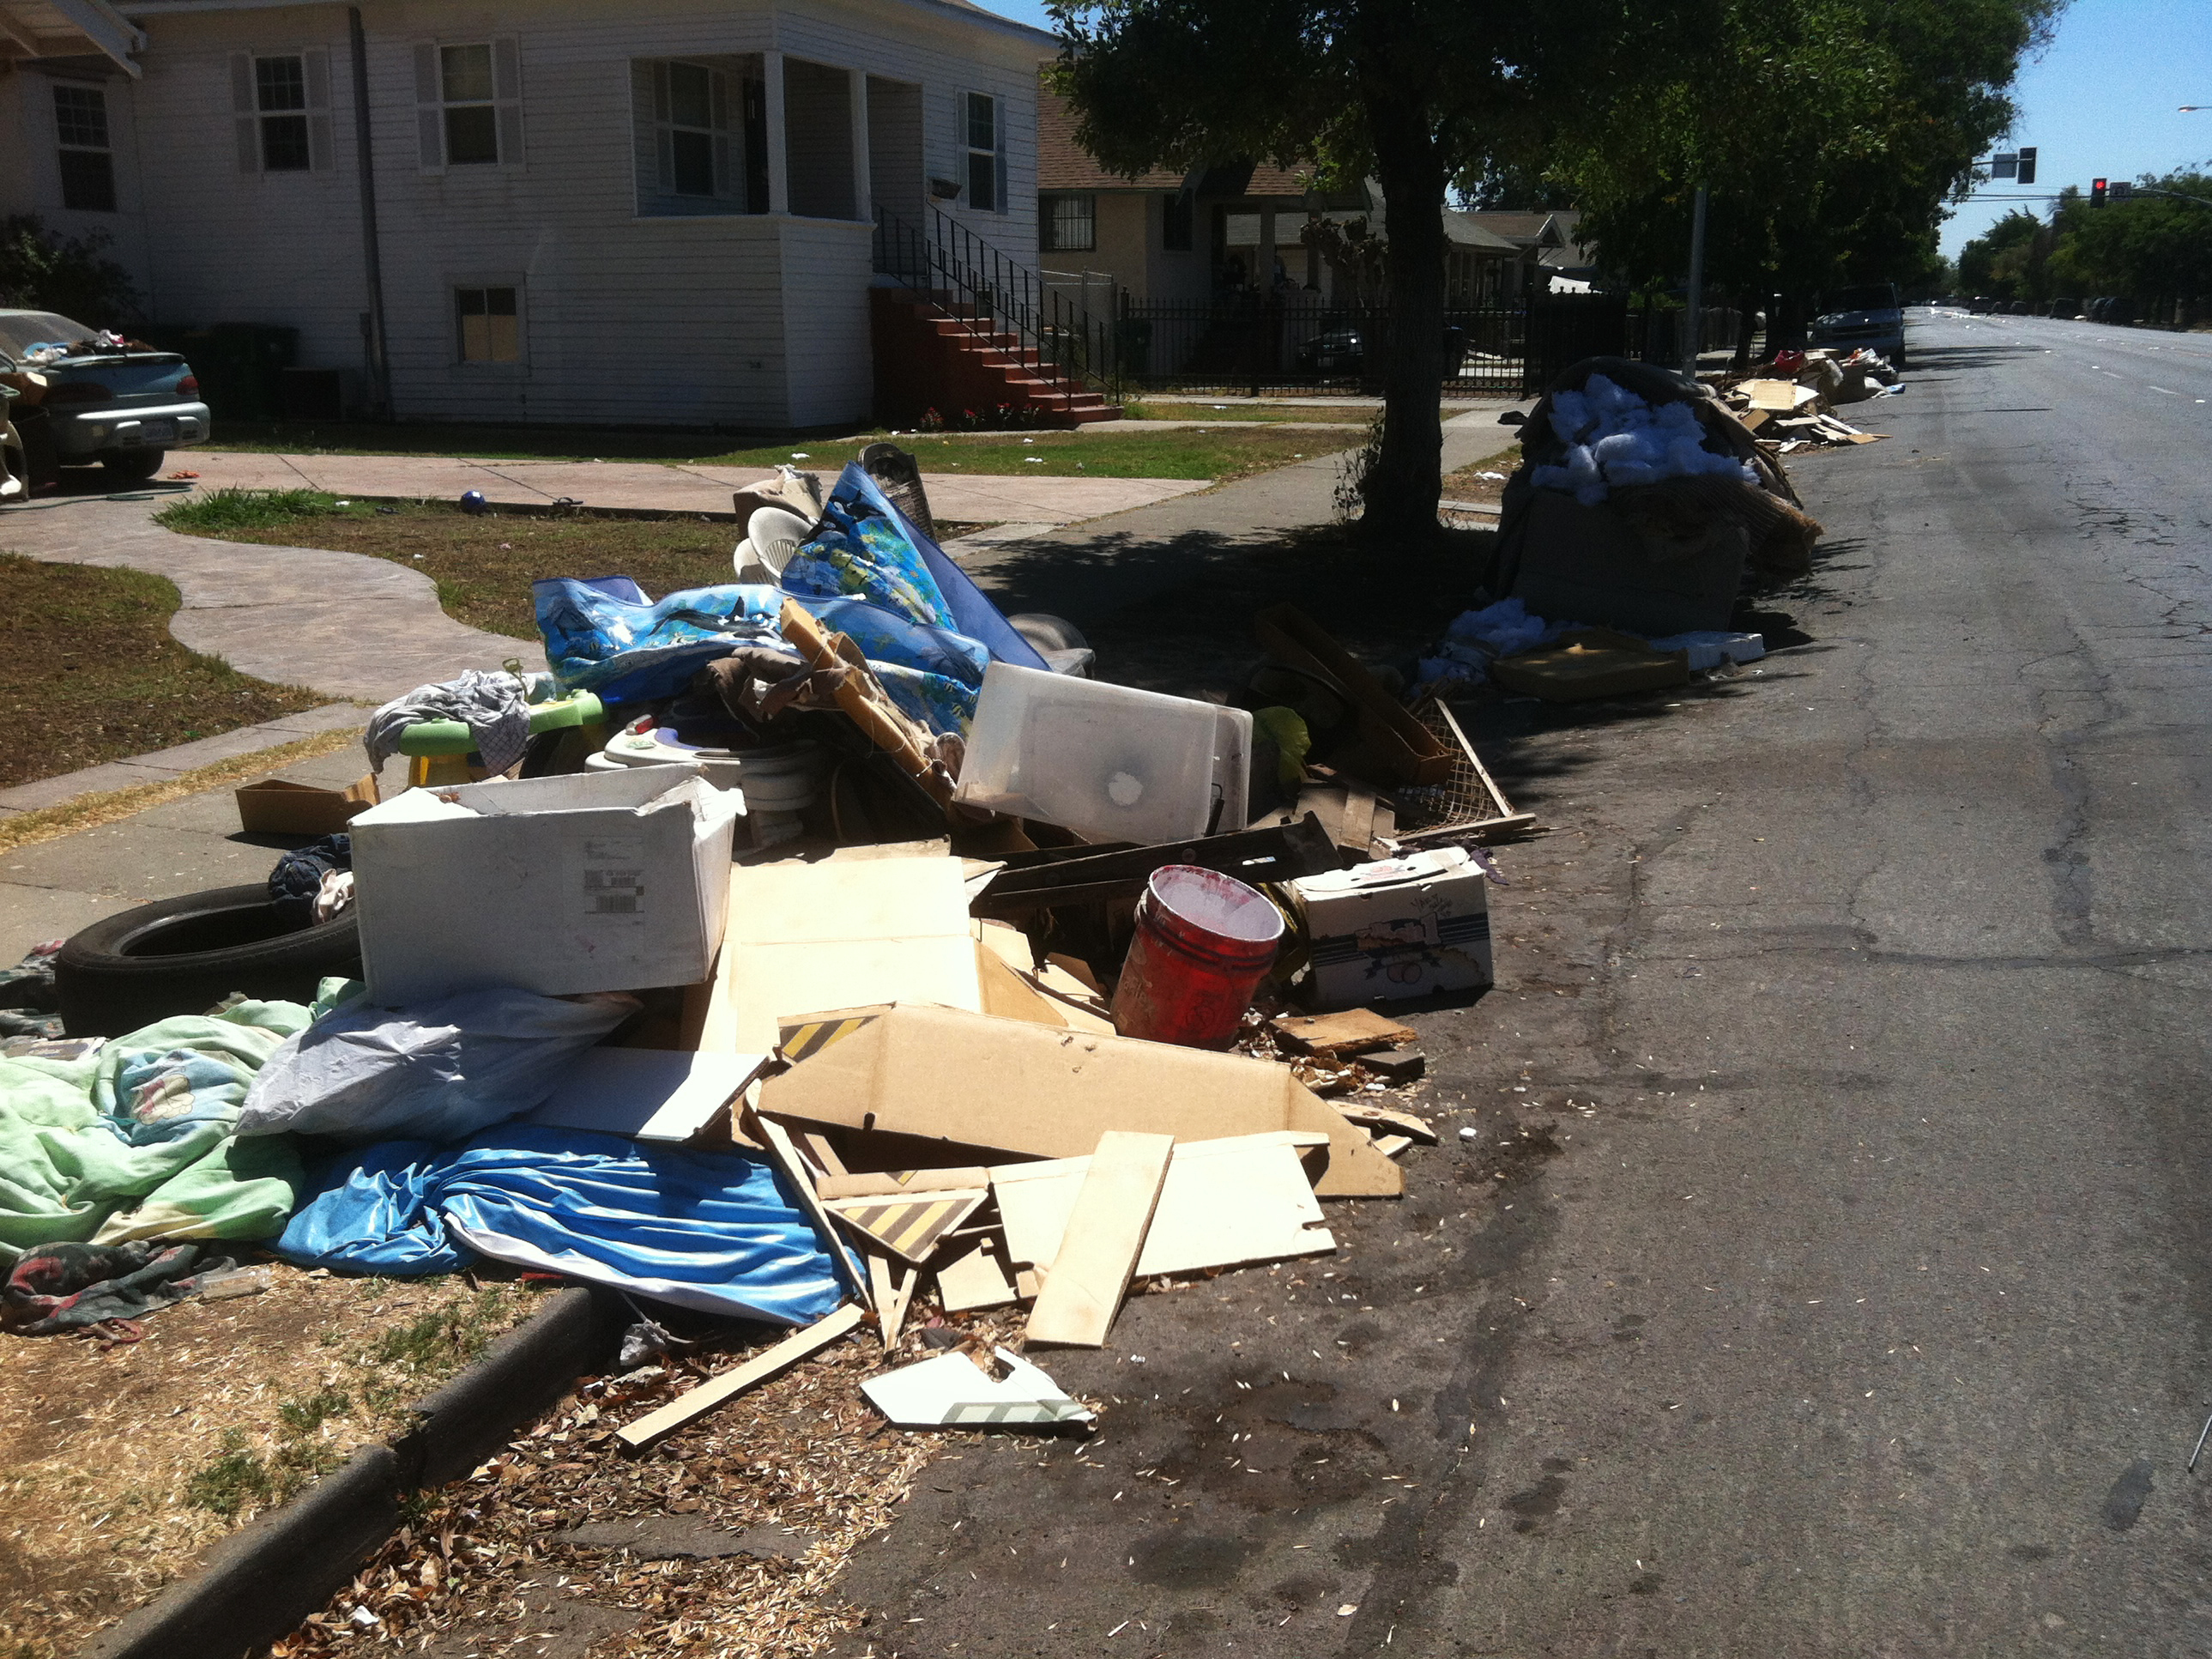 Along California Street, residents complain that piles of trash have been sitting uncollected for the better part of two weeks.